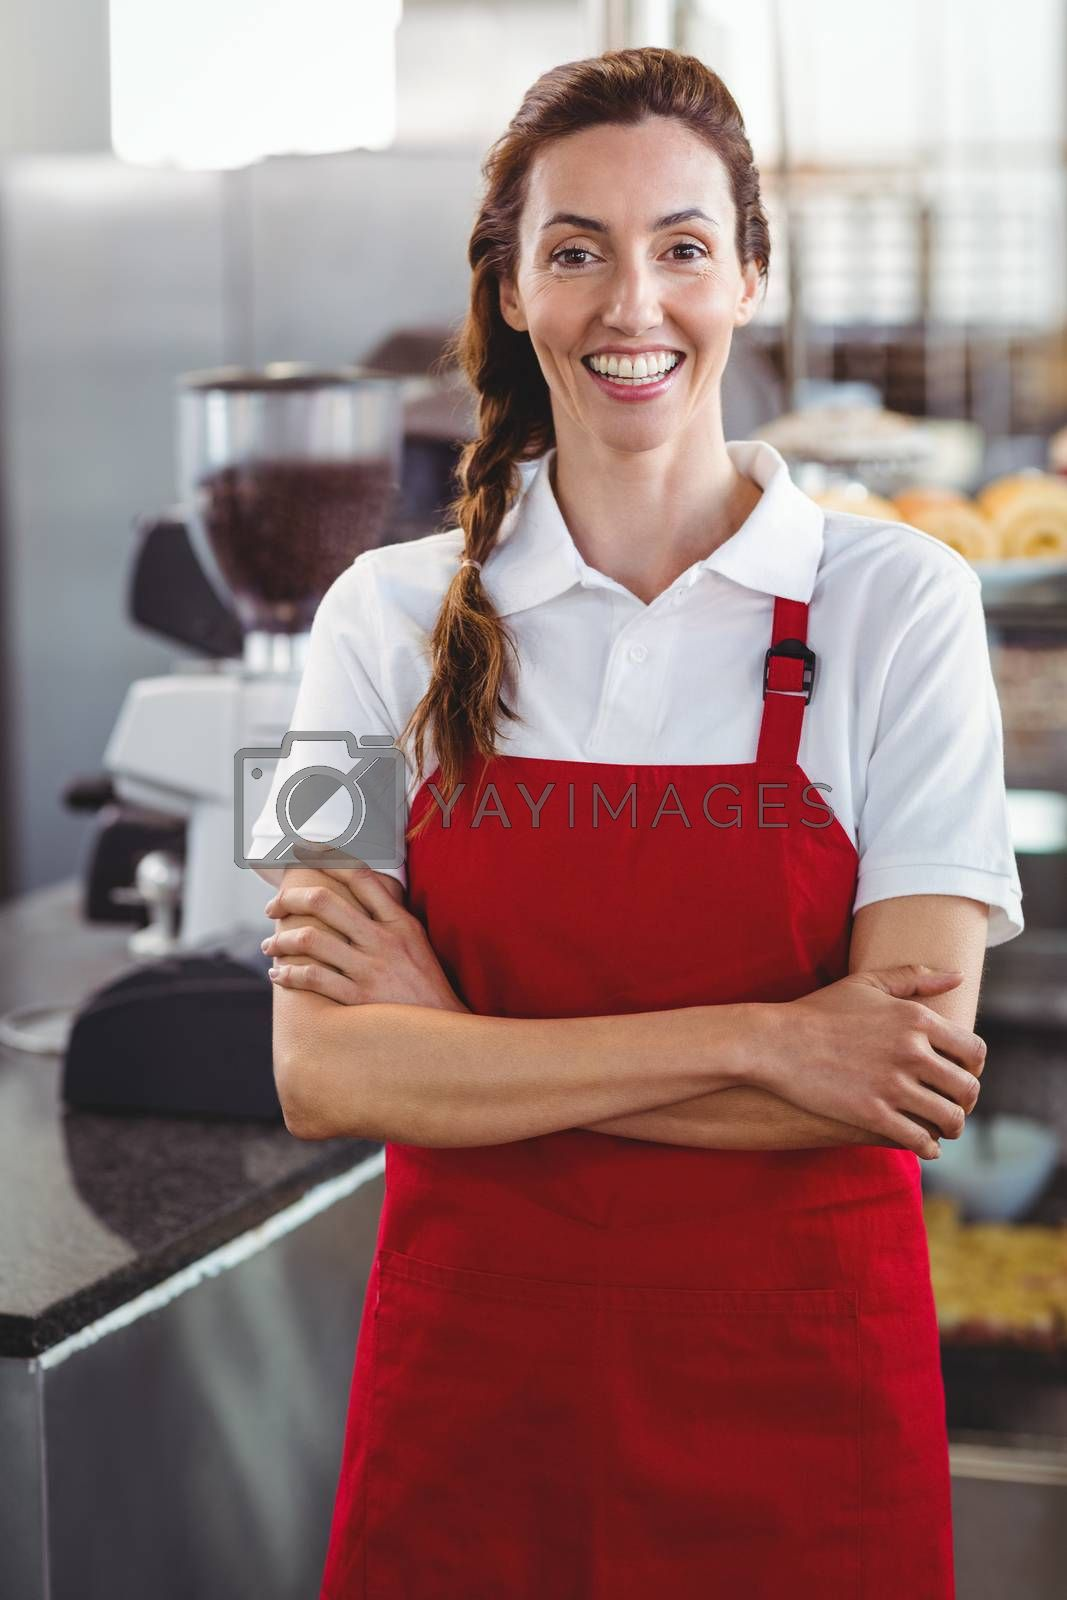 Royalty free image of Pretty barista smiling at camera with arms crossed by Wavebreakmedia